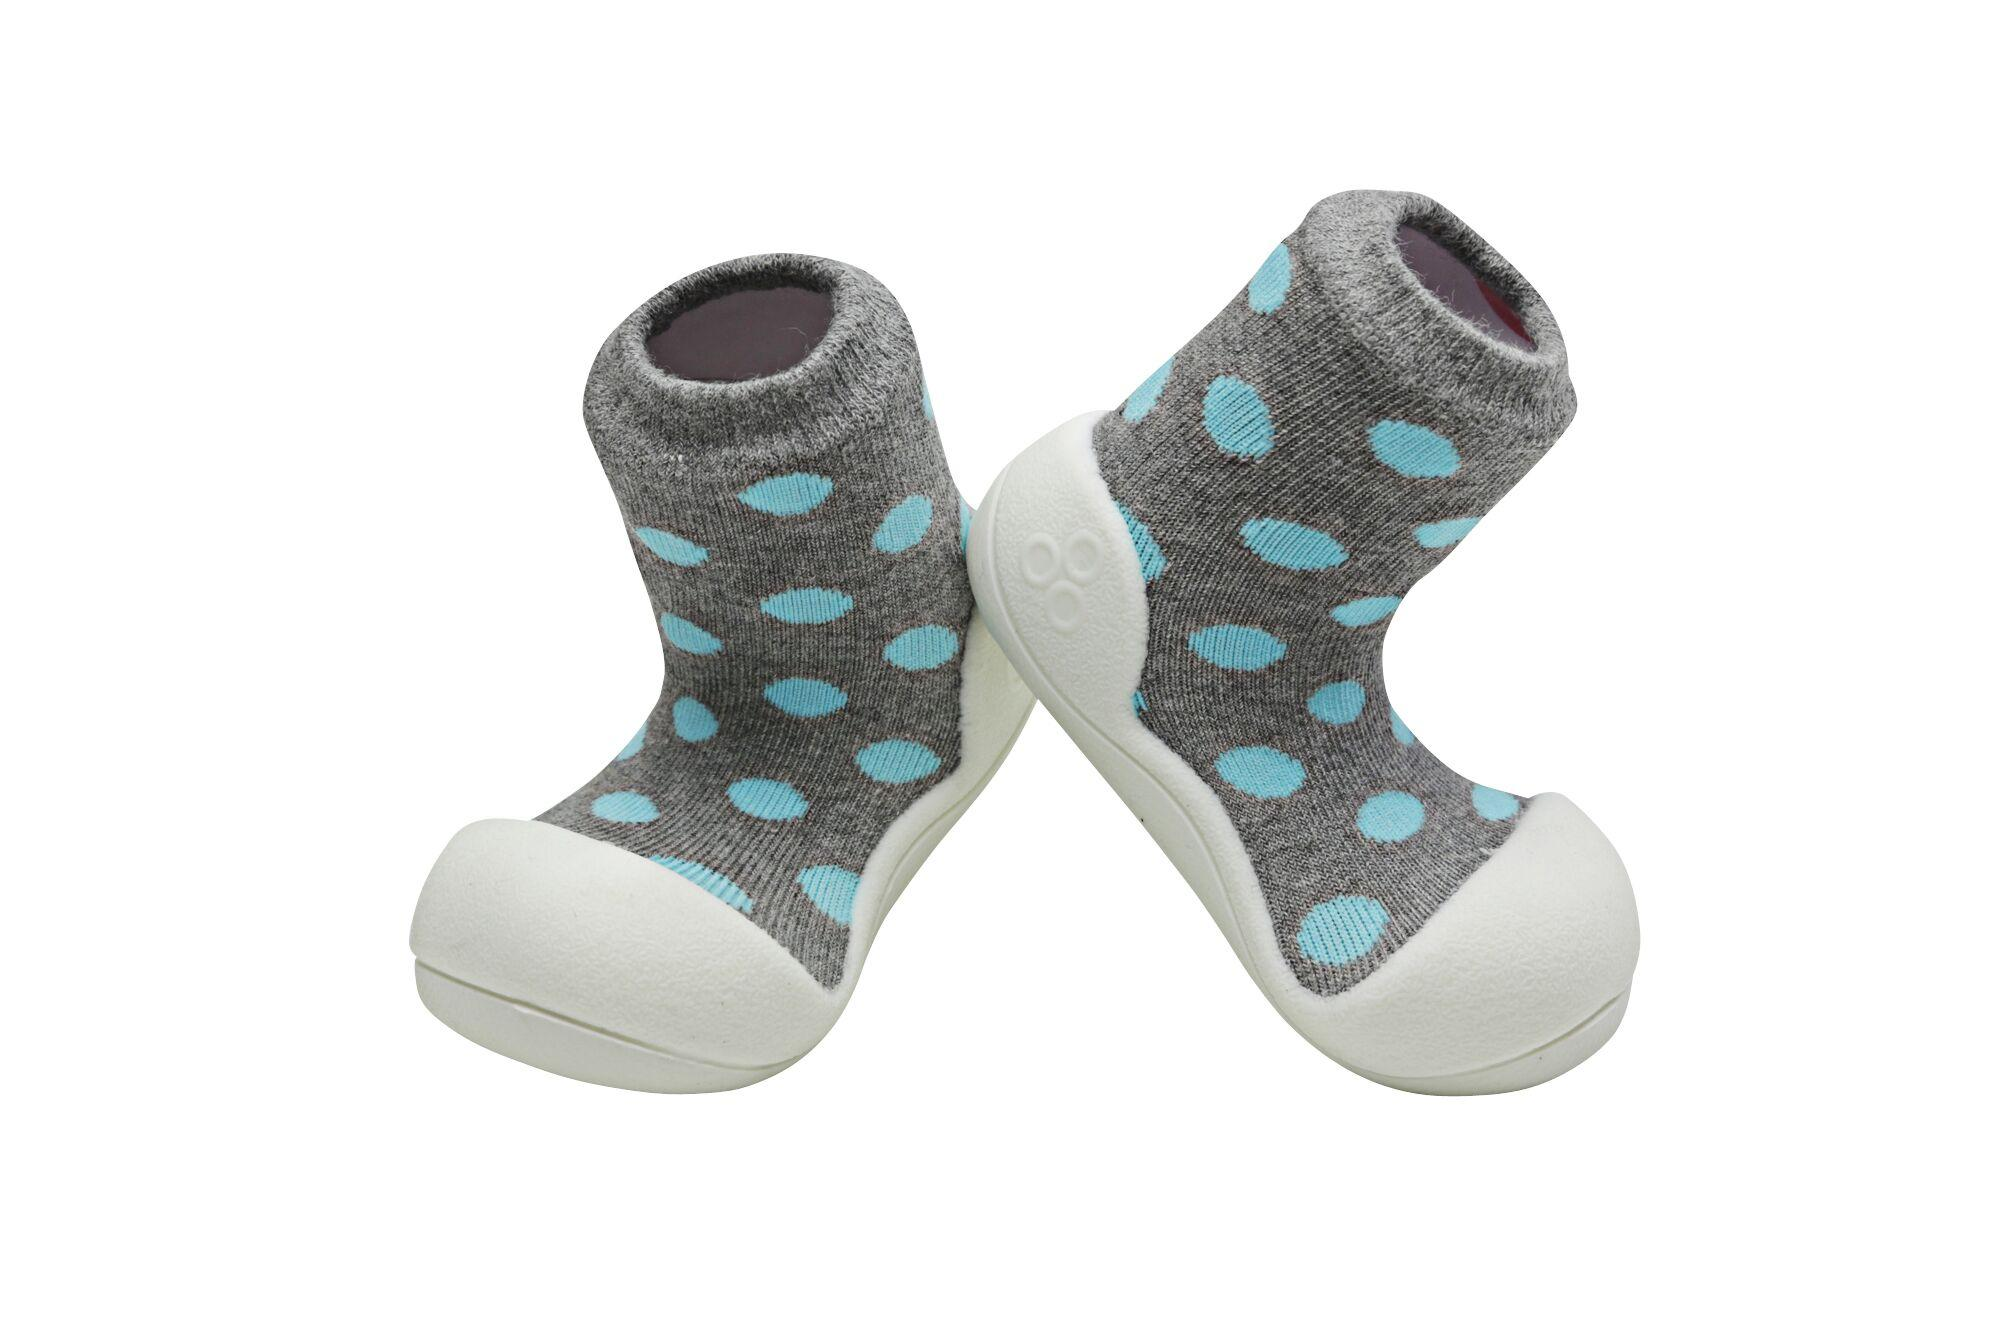 Attipas Philippines Attipas price list Baby Shoe Socks for sale